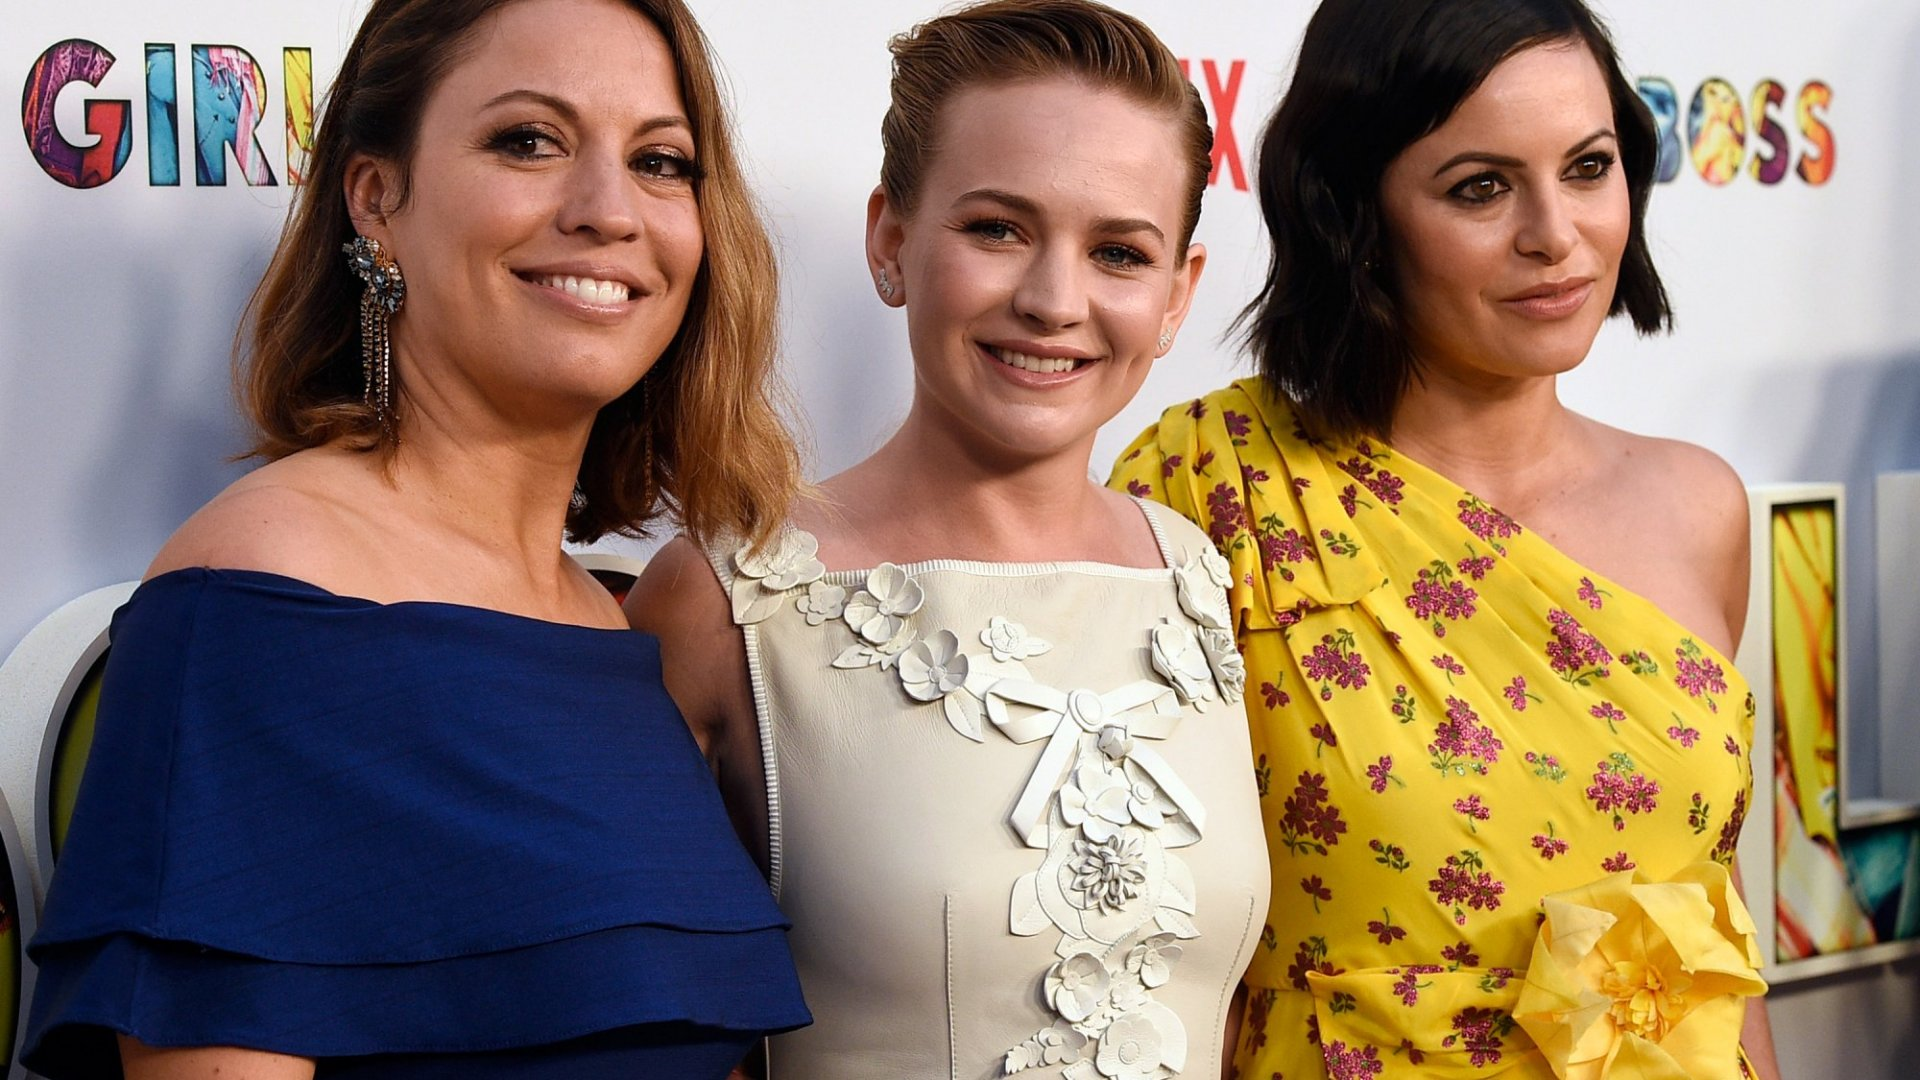 Show creator Kay Cannon, actor Britt Robertson and executive producer Sophia Amoruso attend the premiere of Netflix's <em>Girlboss</em> at ArcLight Cinemas on April 17, 2017 in Hollywood, California. (Photo by Kevork Djansezian/Getty Images)